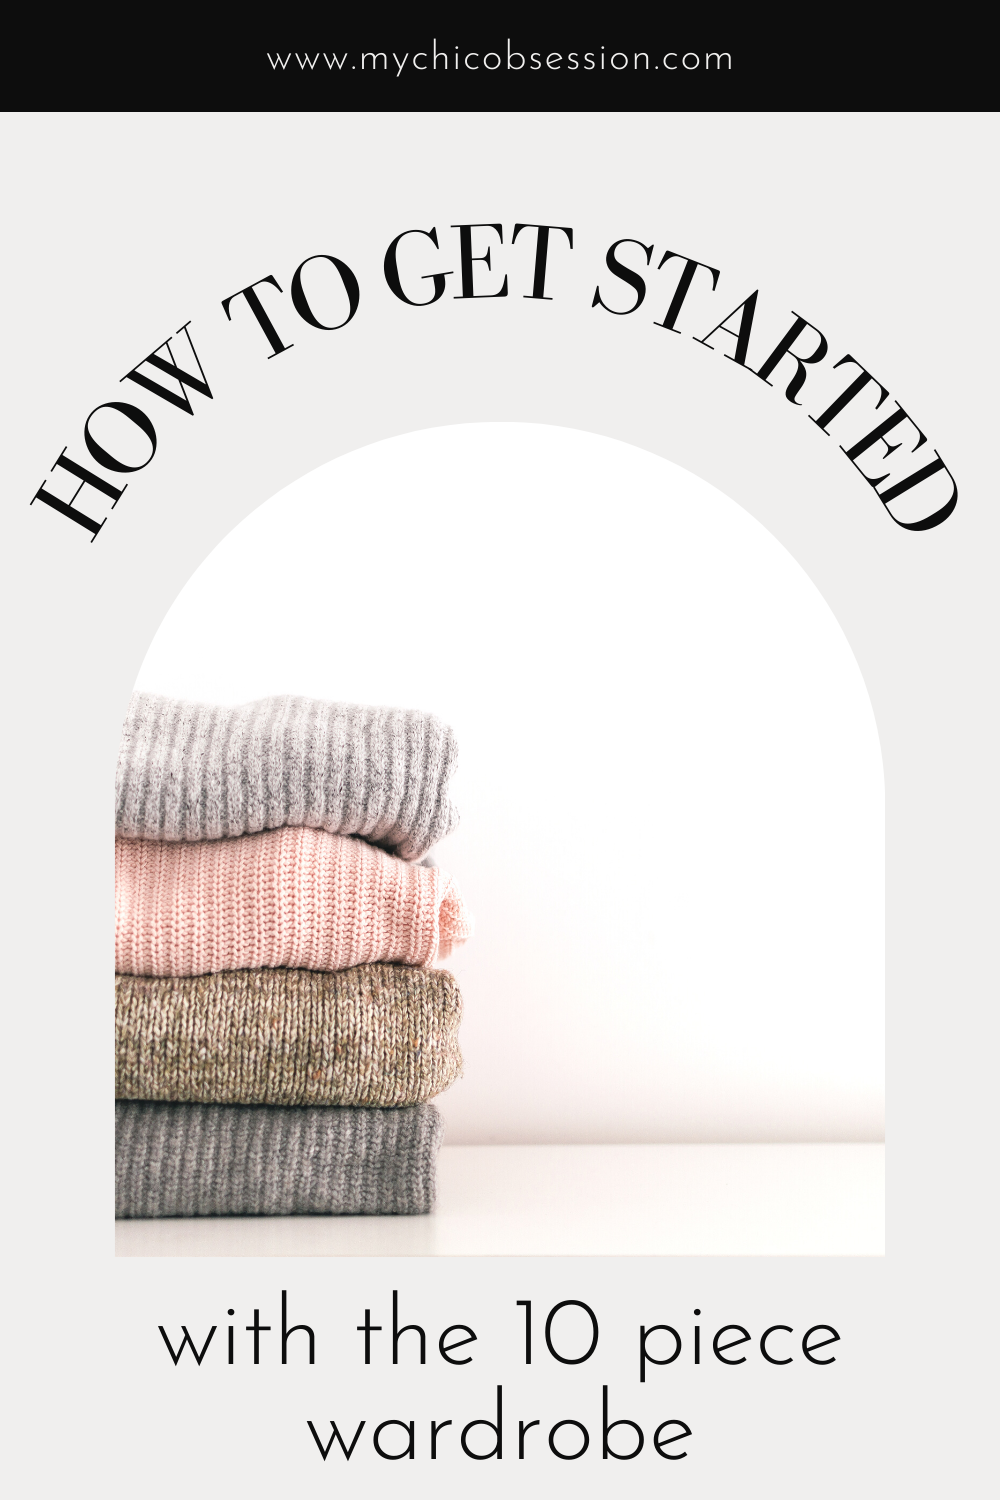 how to get started with the 10 piece wardrobe